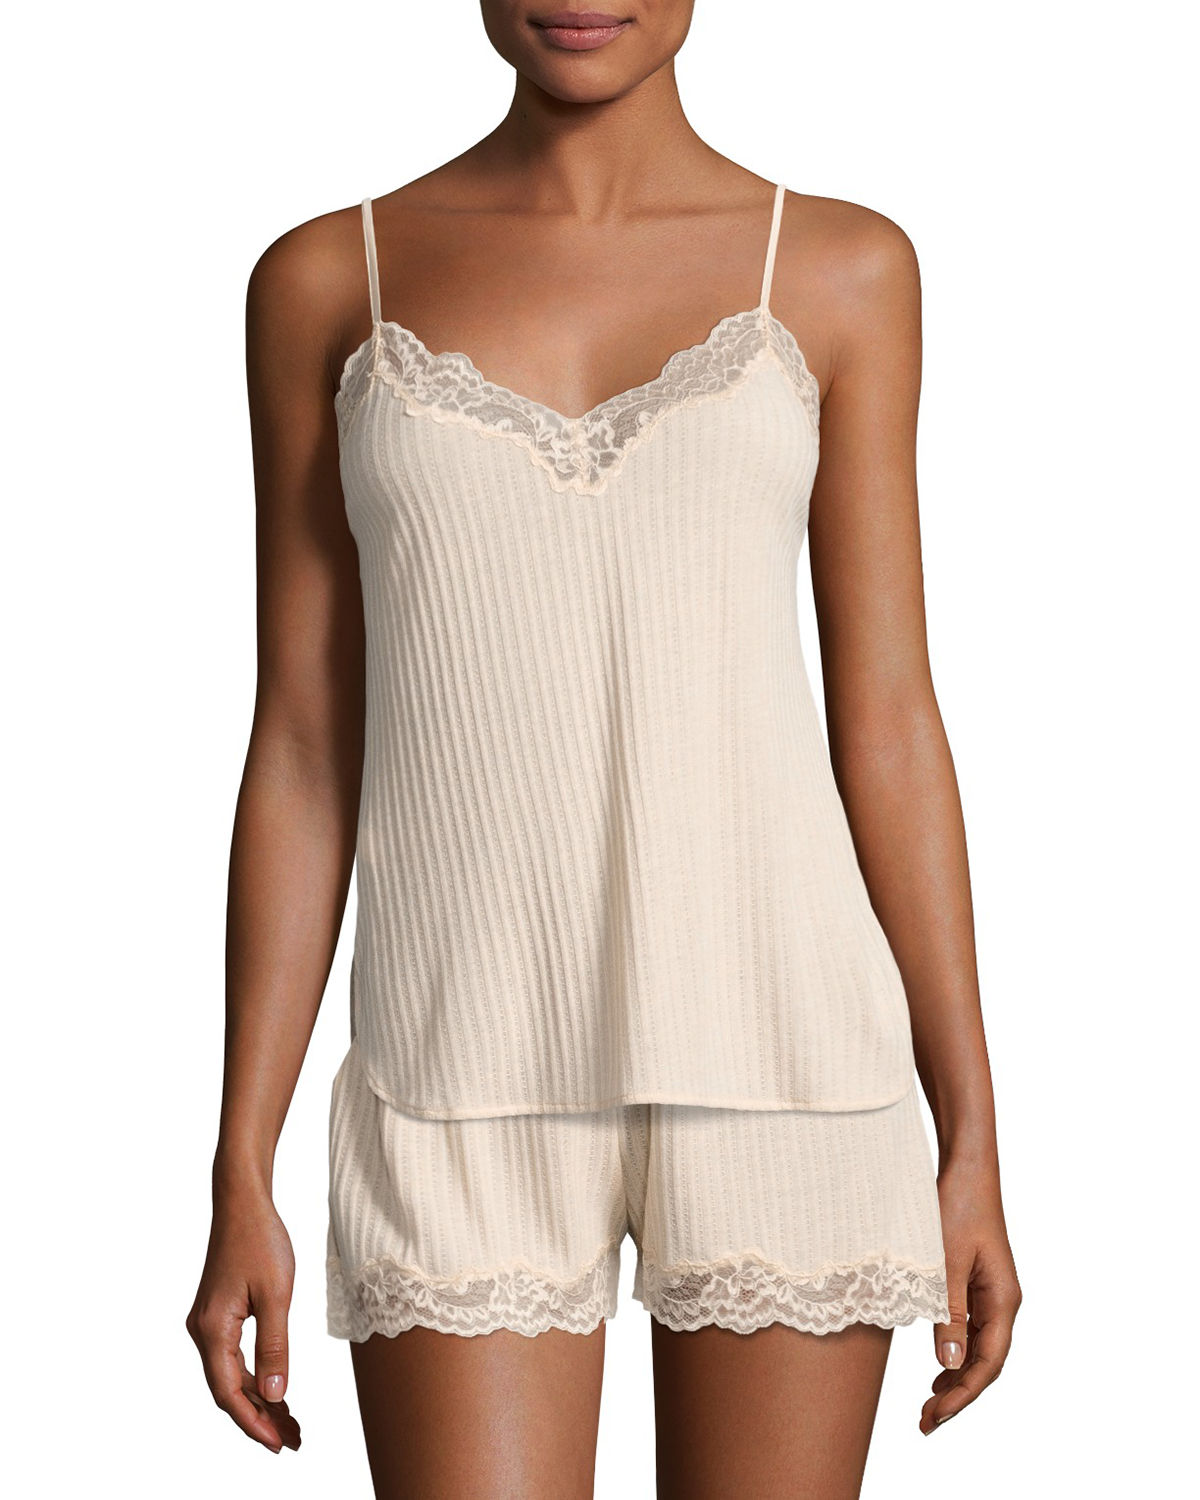 Lily Blushing Camisole Top